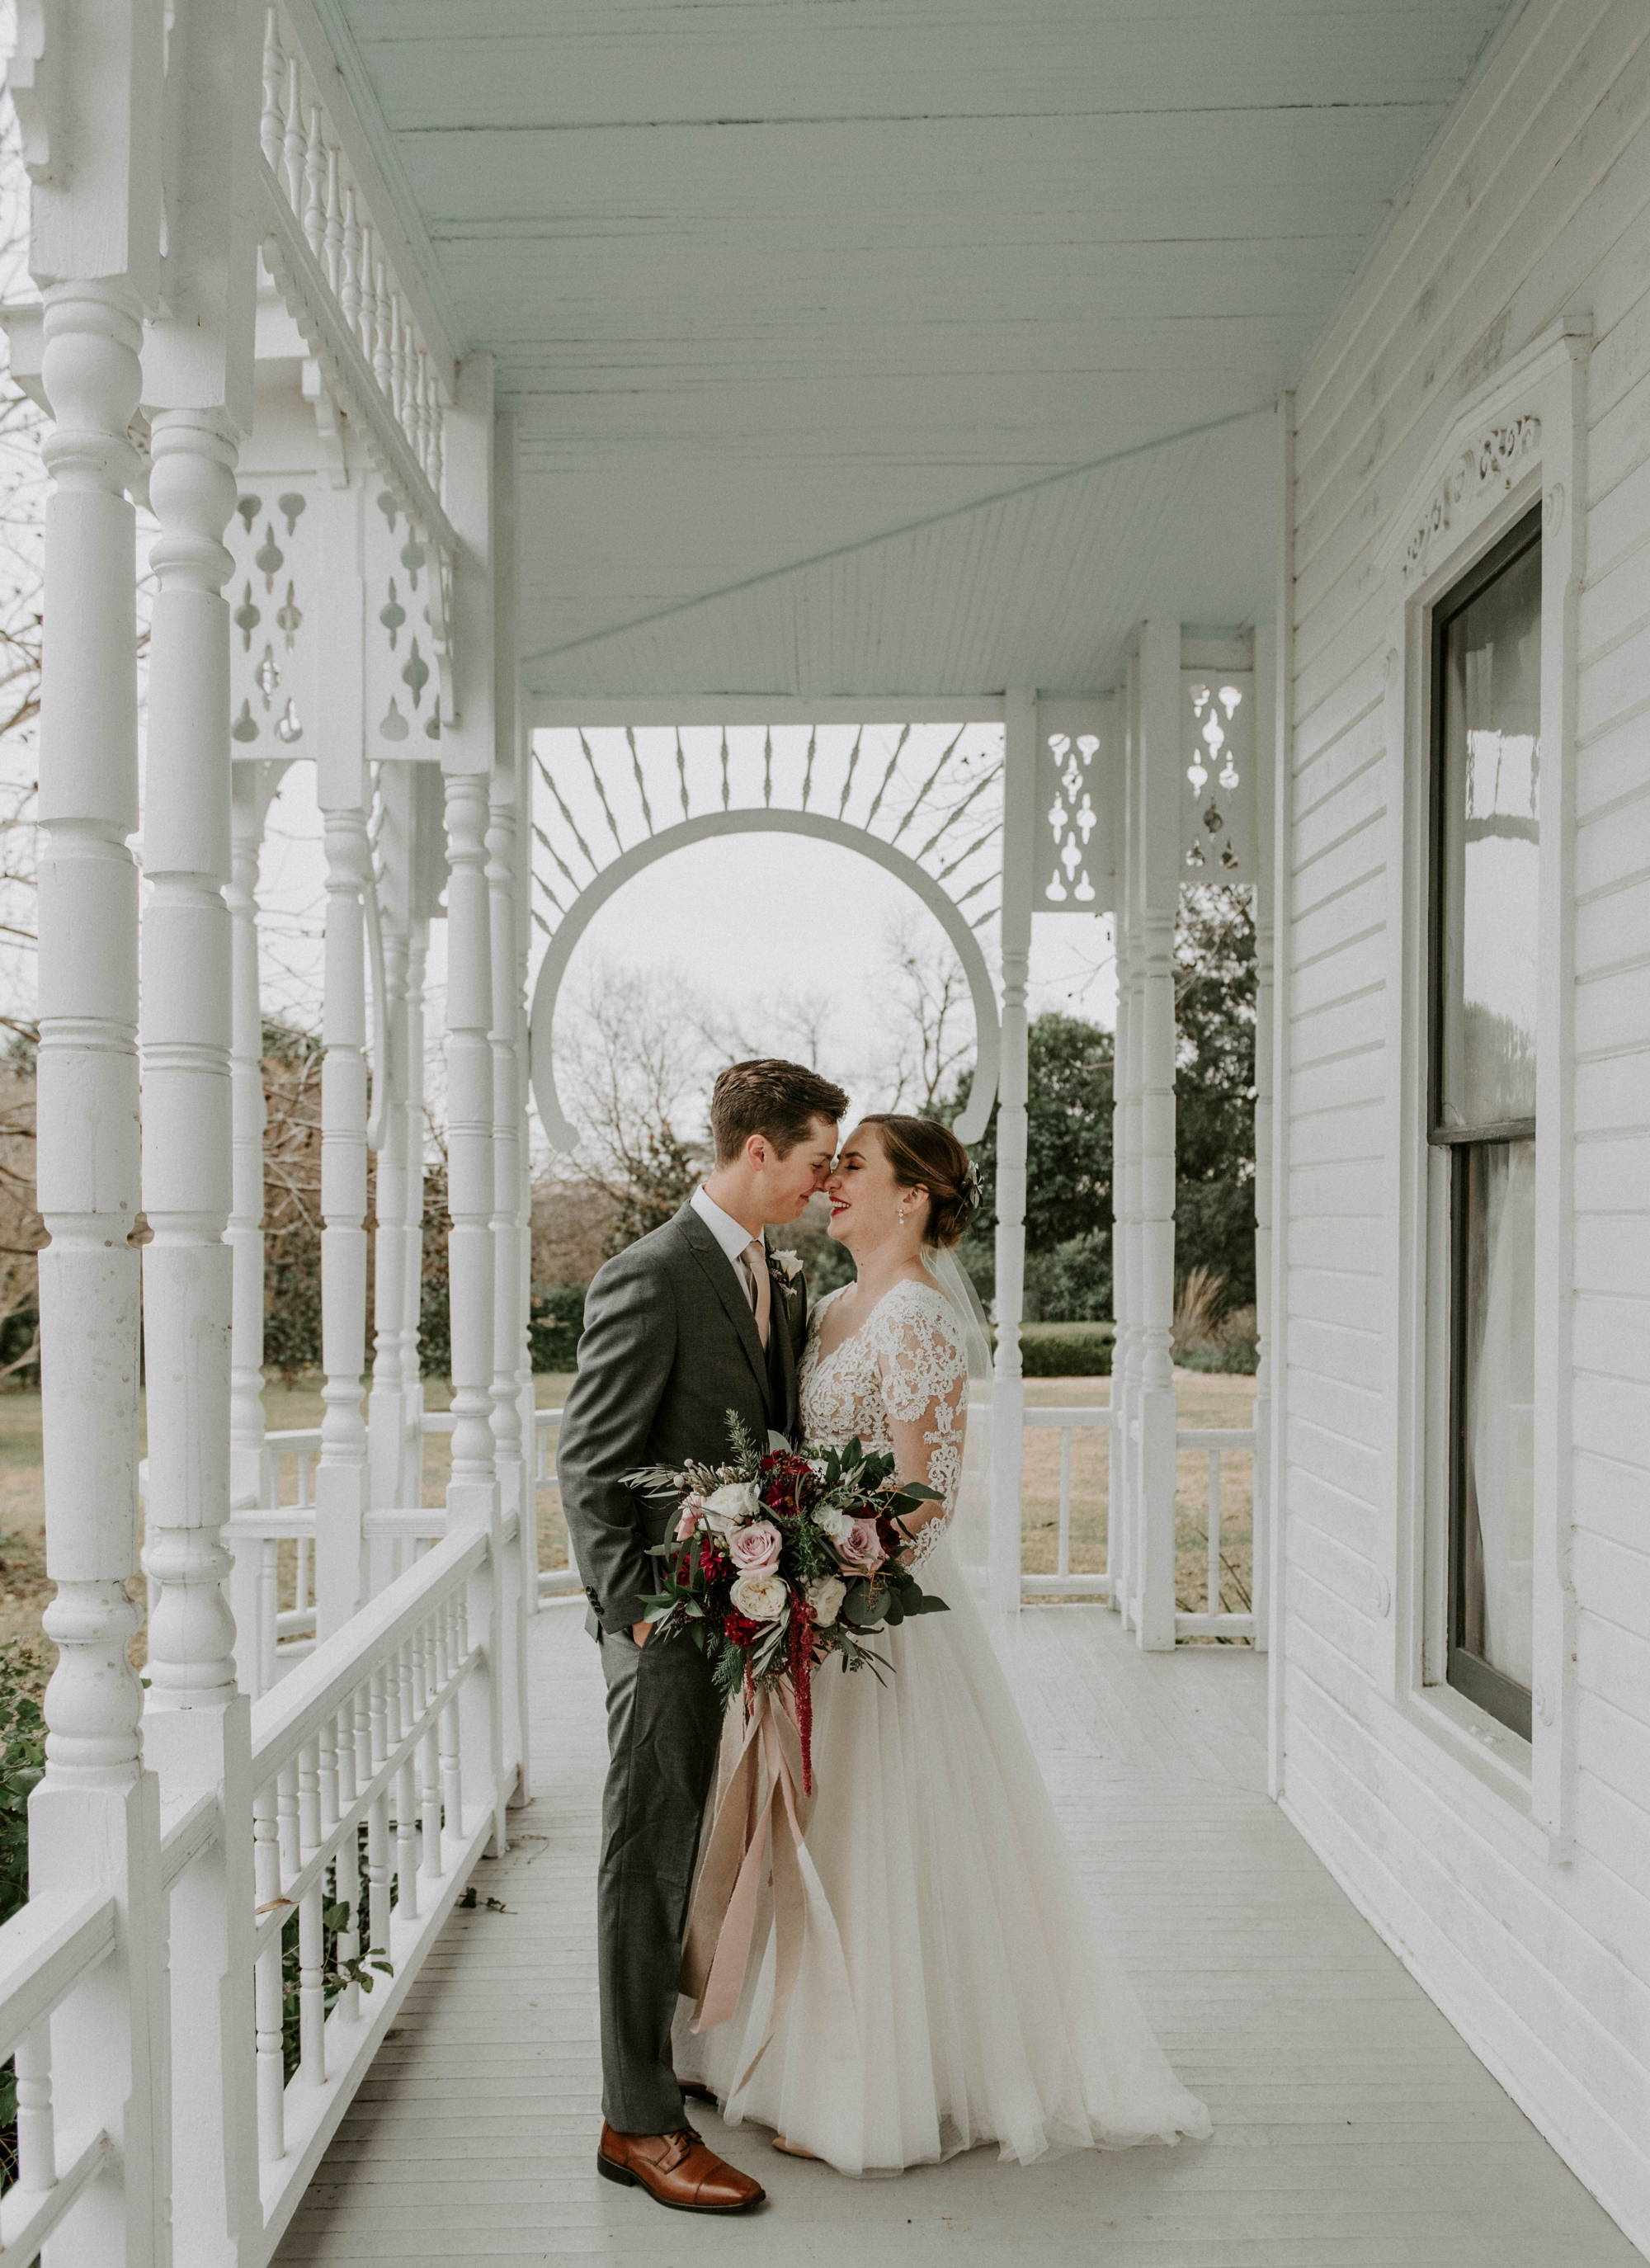 austin-texas-barr-mansion-wedding-photography-1778-photographie-27.jpg